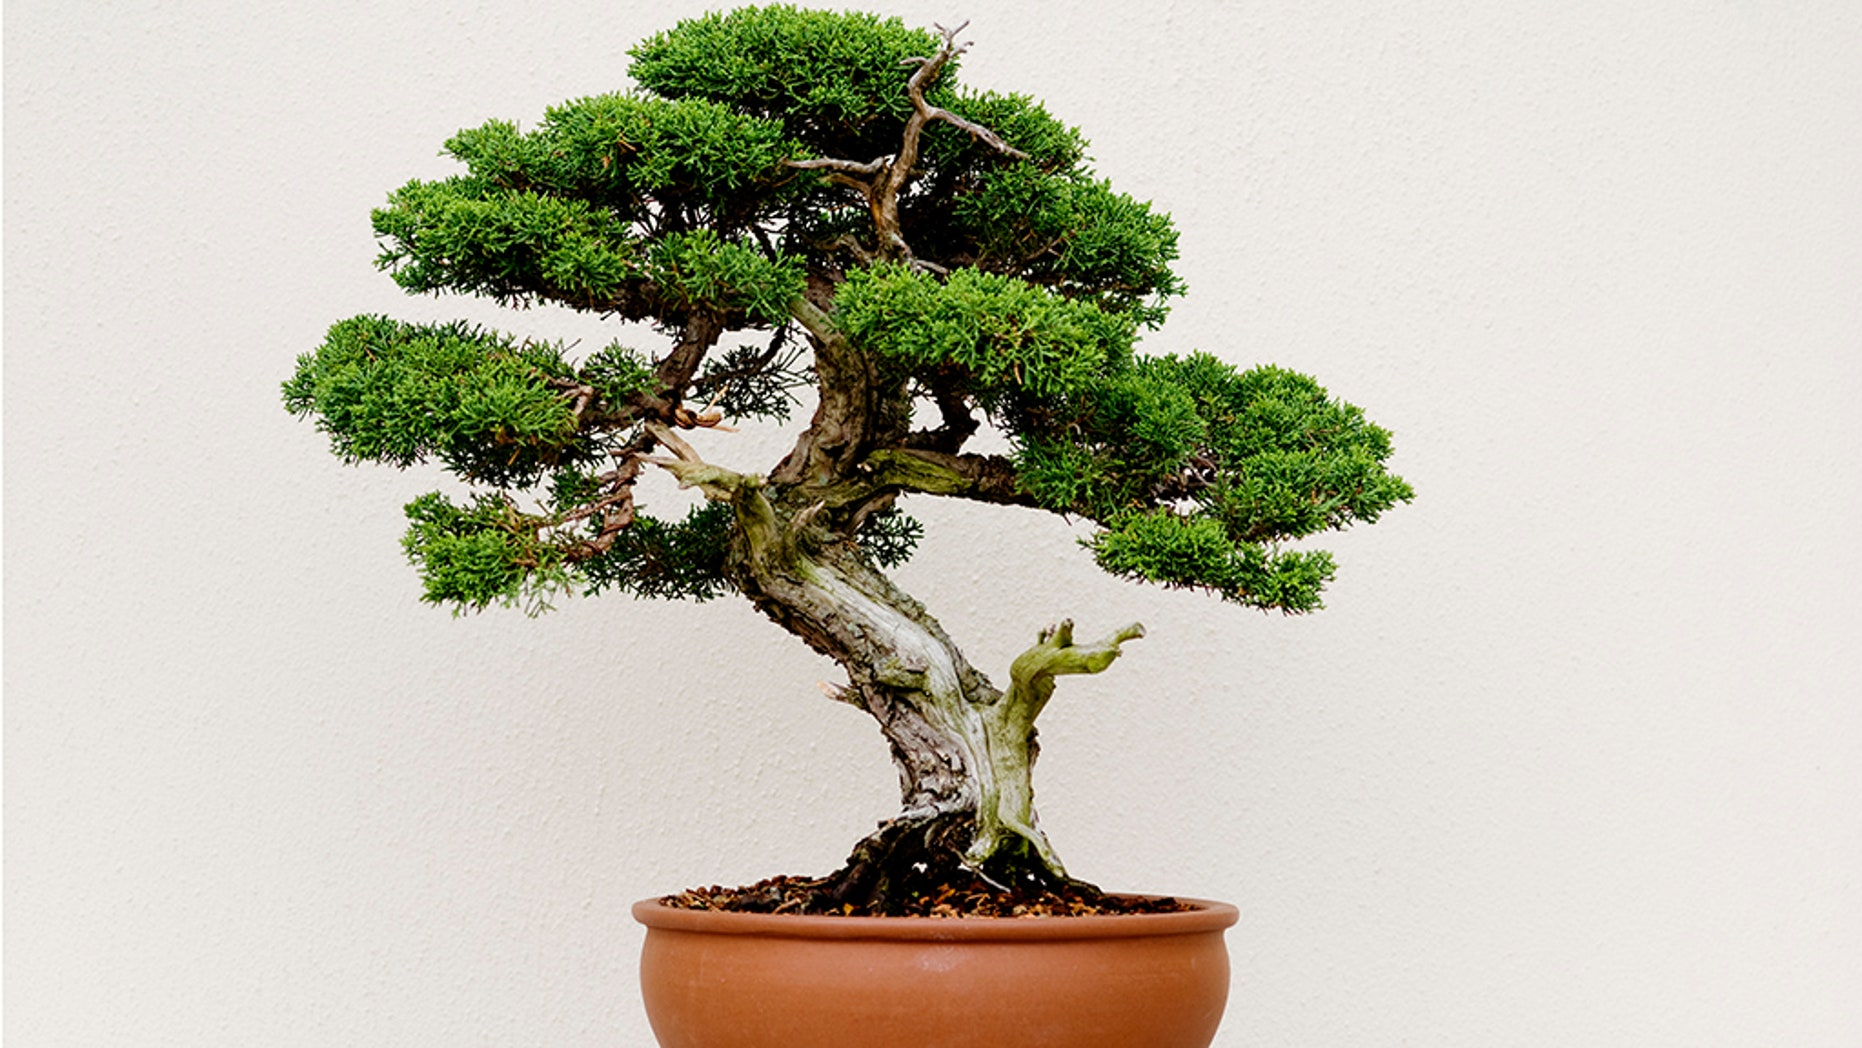 Thieves in Japan have stolen seven bonsai trees from a couple suggesting a plea on social media.